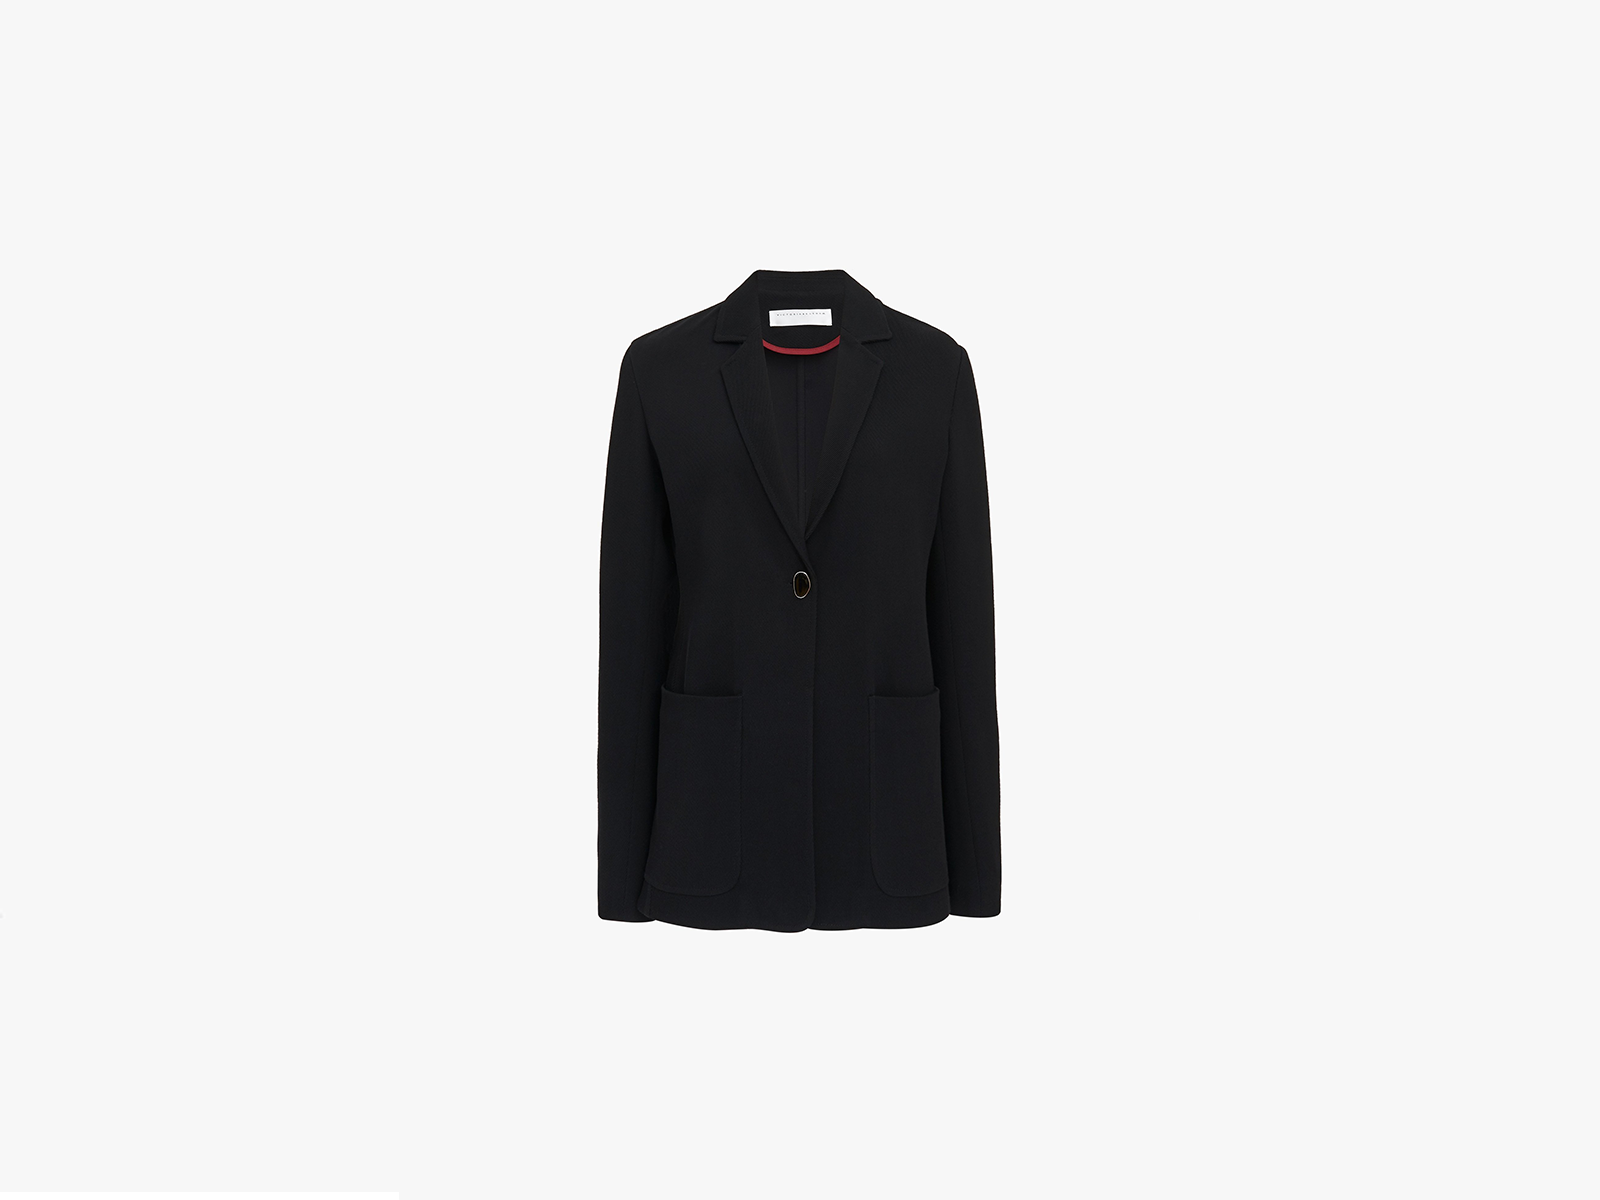 Victoria Beckham Single Breasted Soft Tailored Jacket In Black